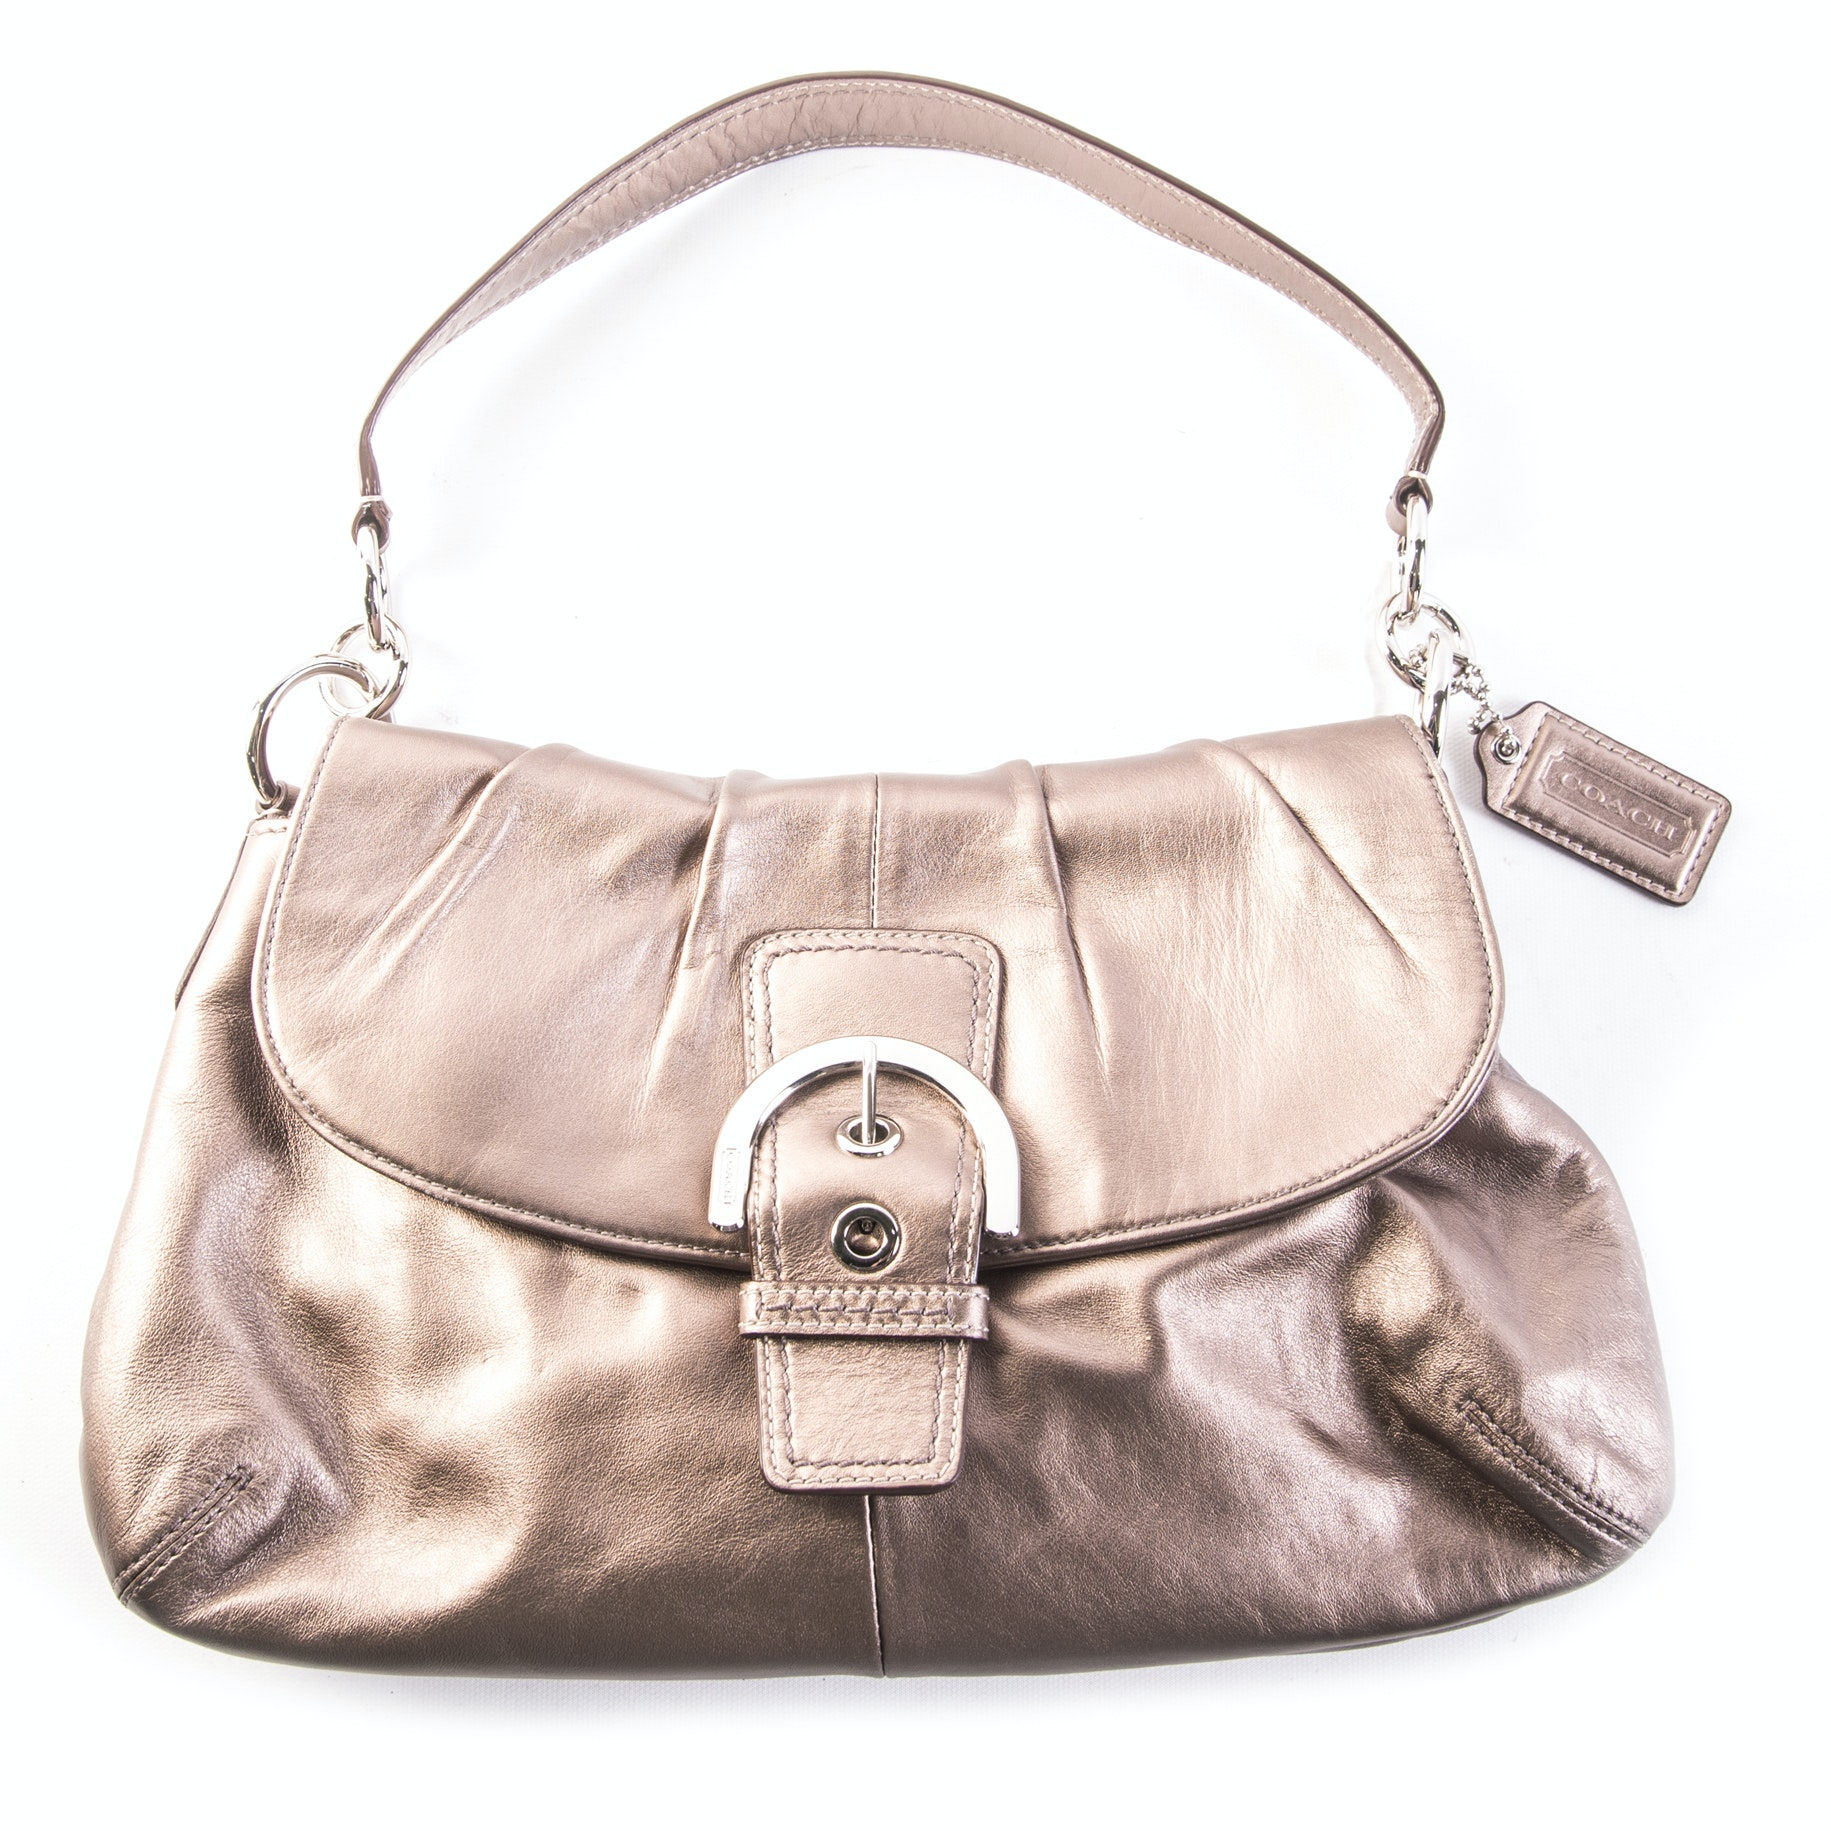 "Coach ""Soho"" Bronze Leather Handbag"